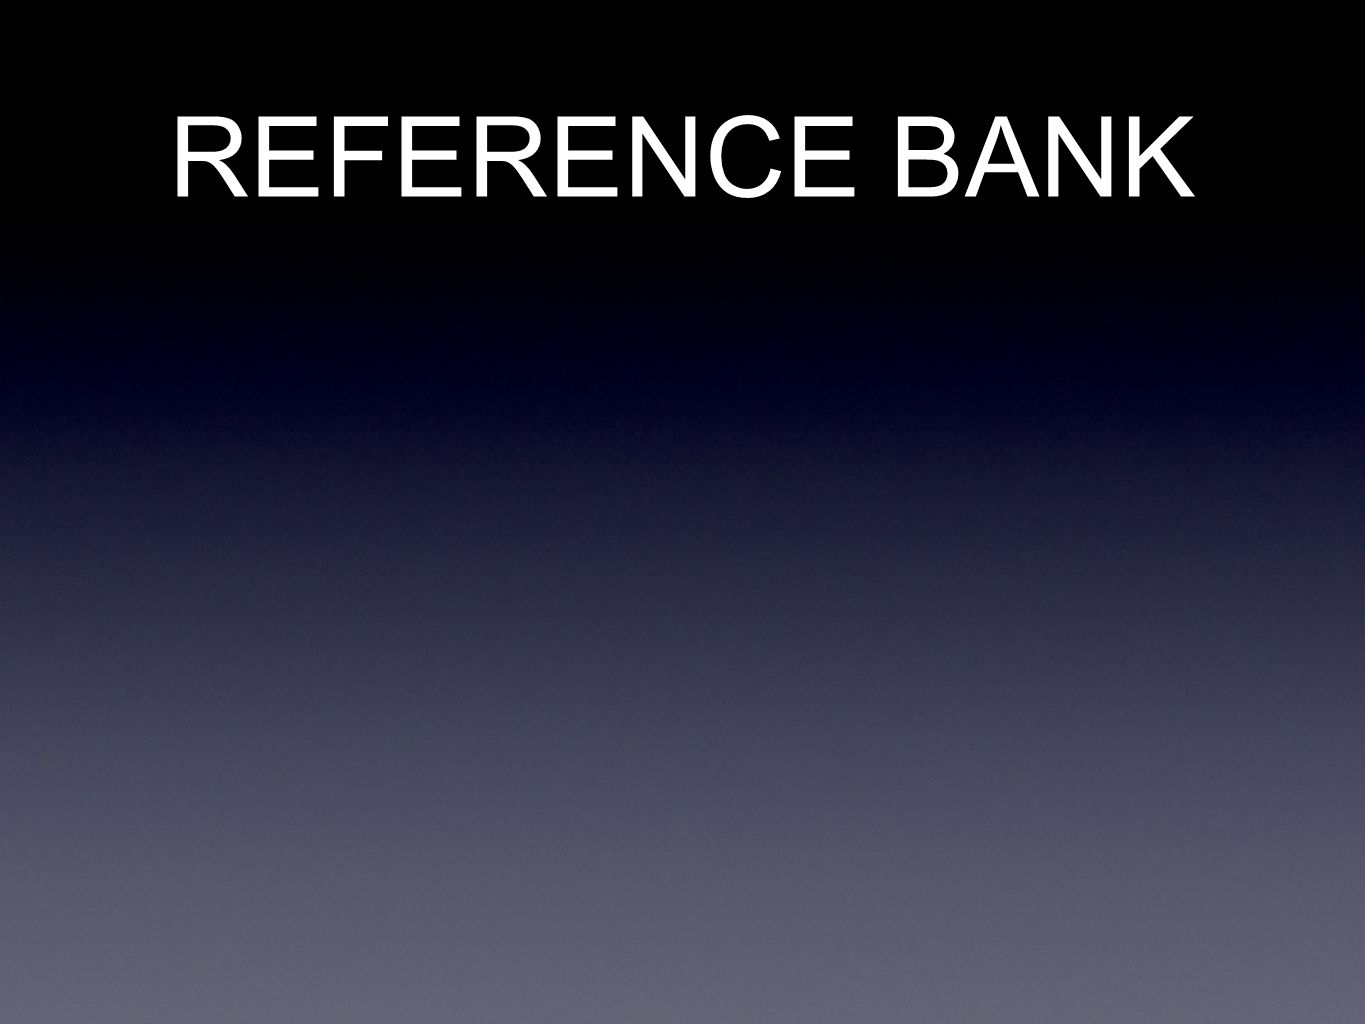 REFERENCE BANK